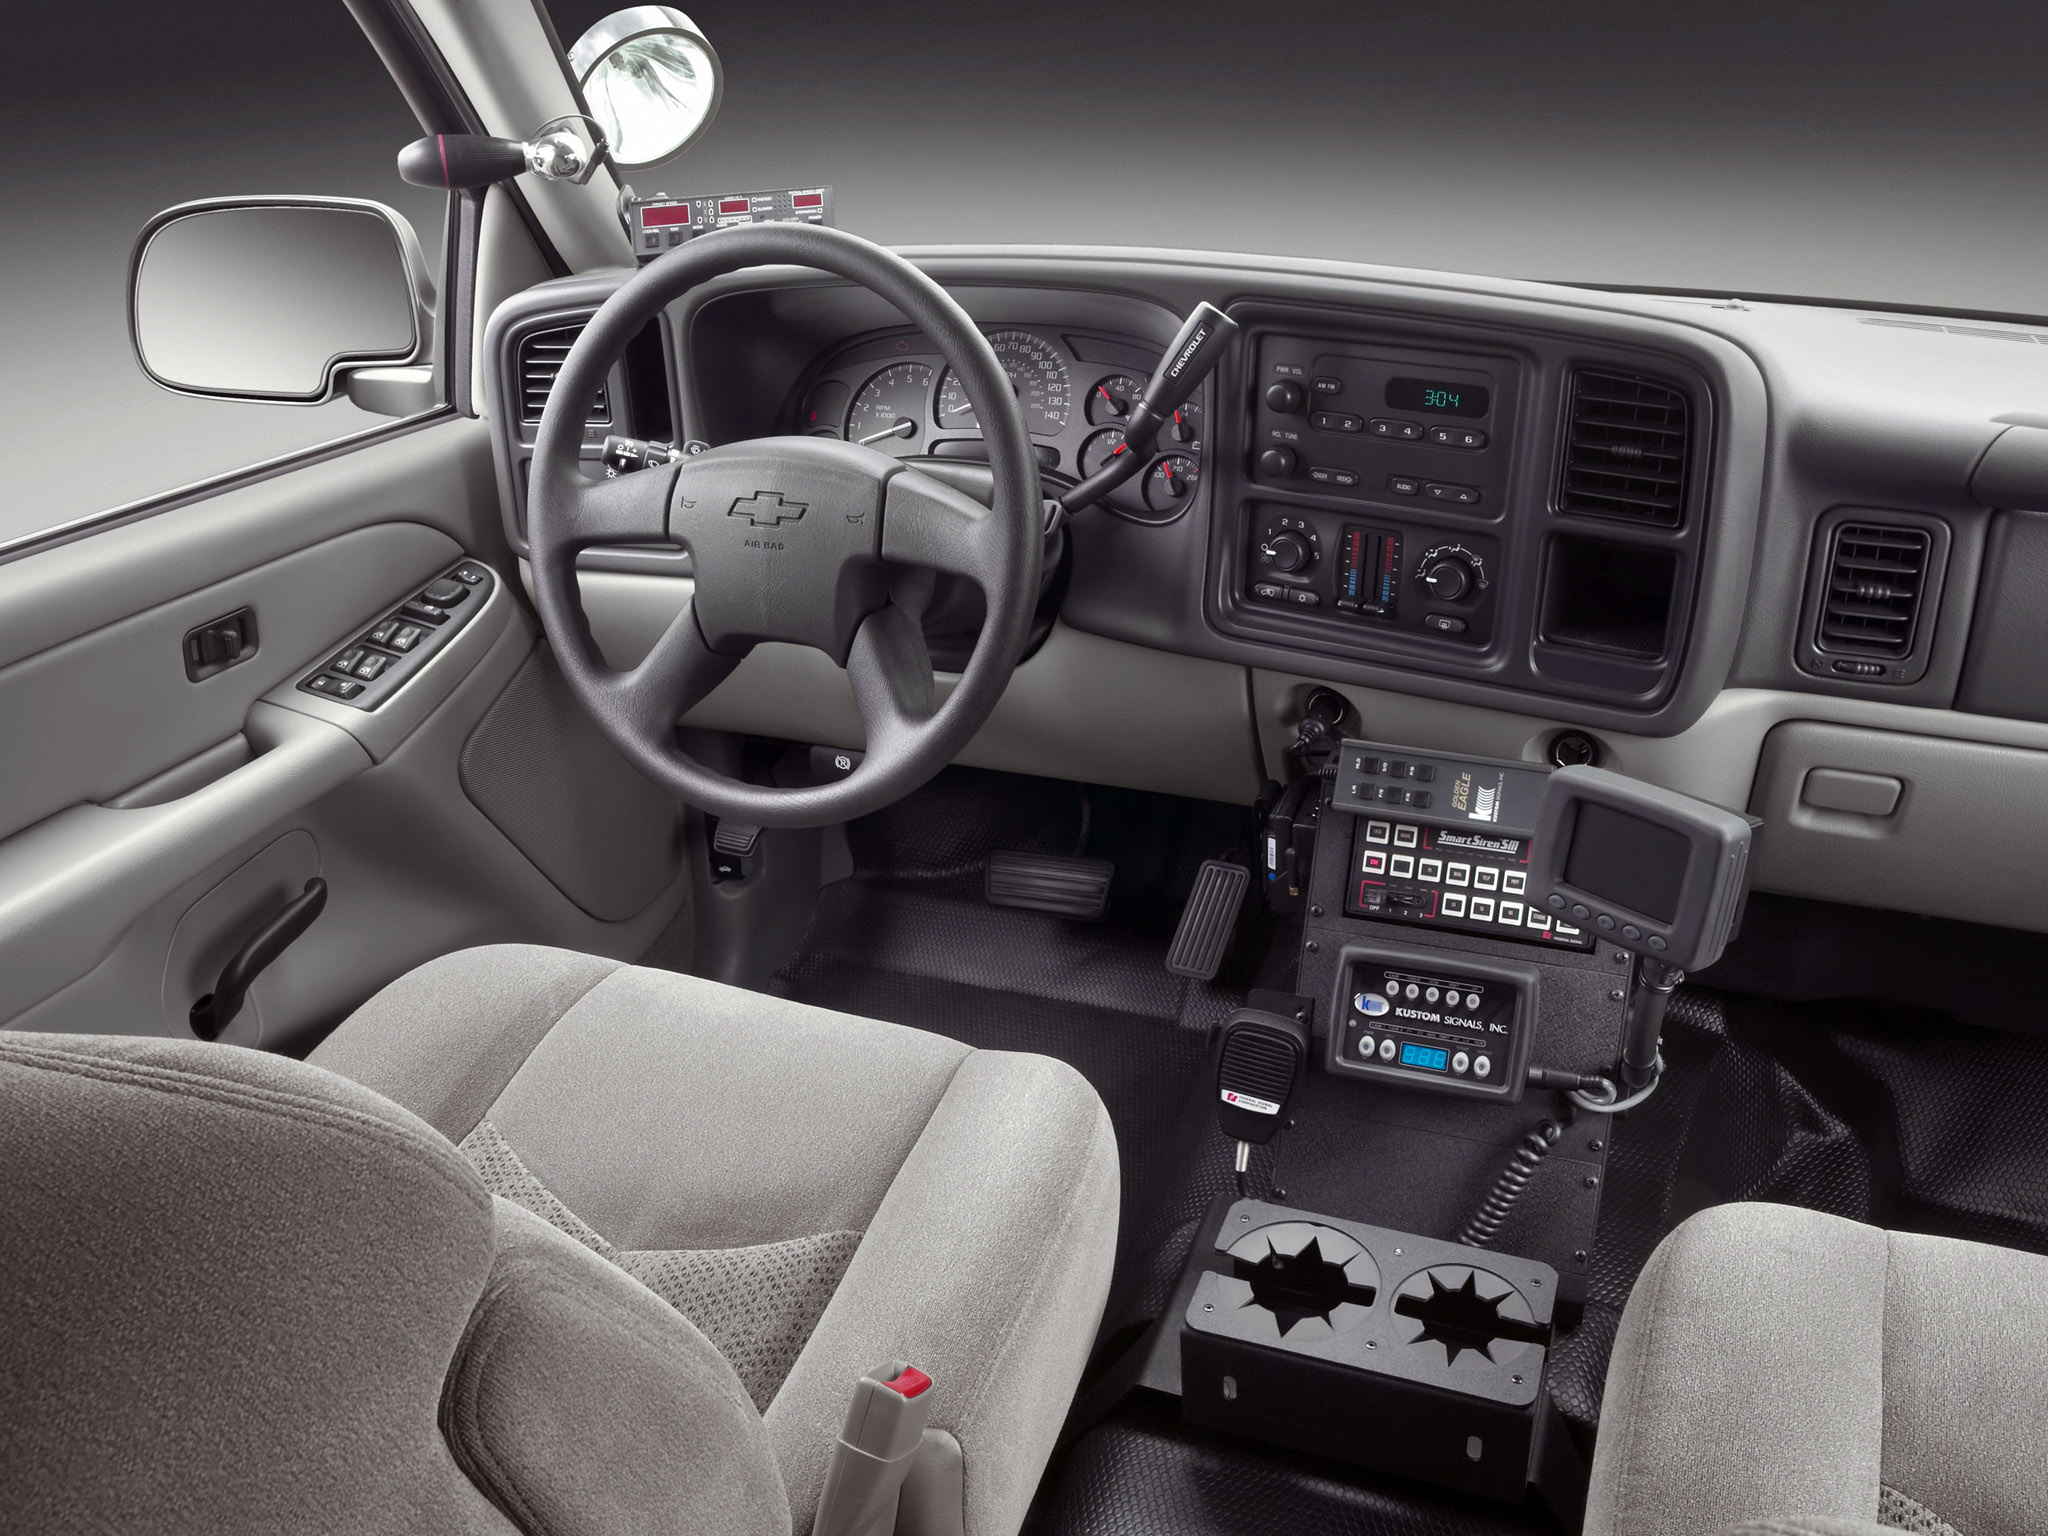 2005 Chevrolet Tahoe gmt840  pictures information and specs